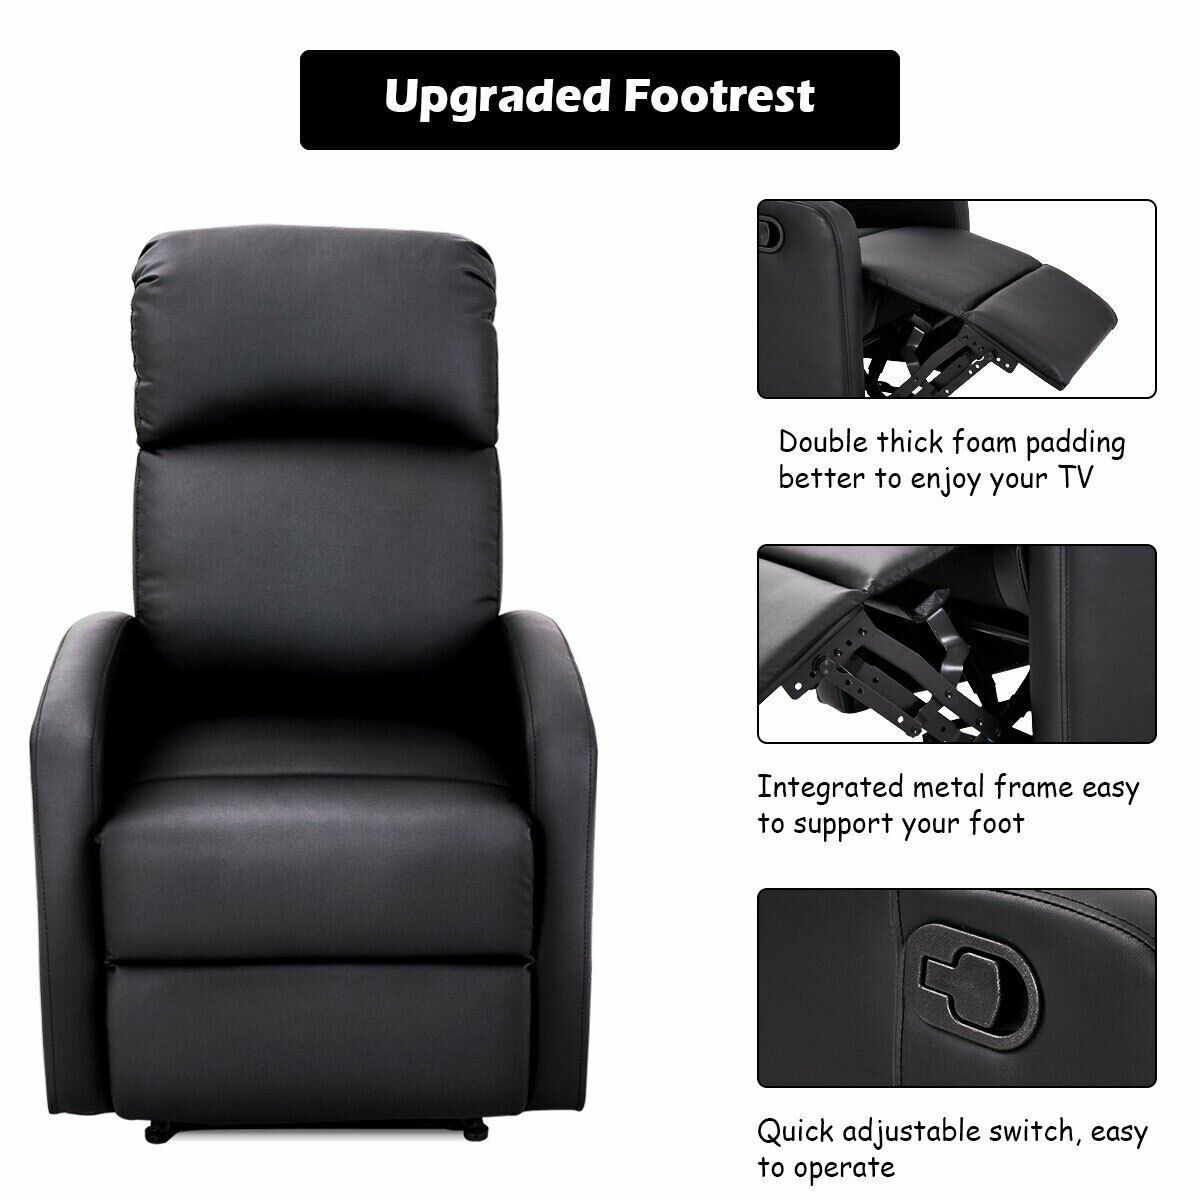 Incredible Black Pu Leather Recliner Massage Chair Sofa Furniture In Ncnpc Chair Design For Home Ncnpcorg